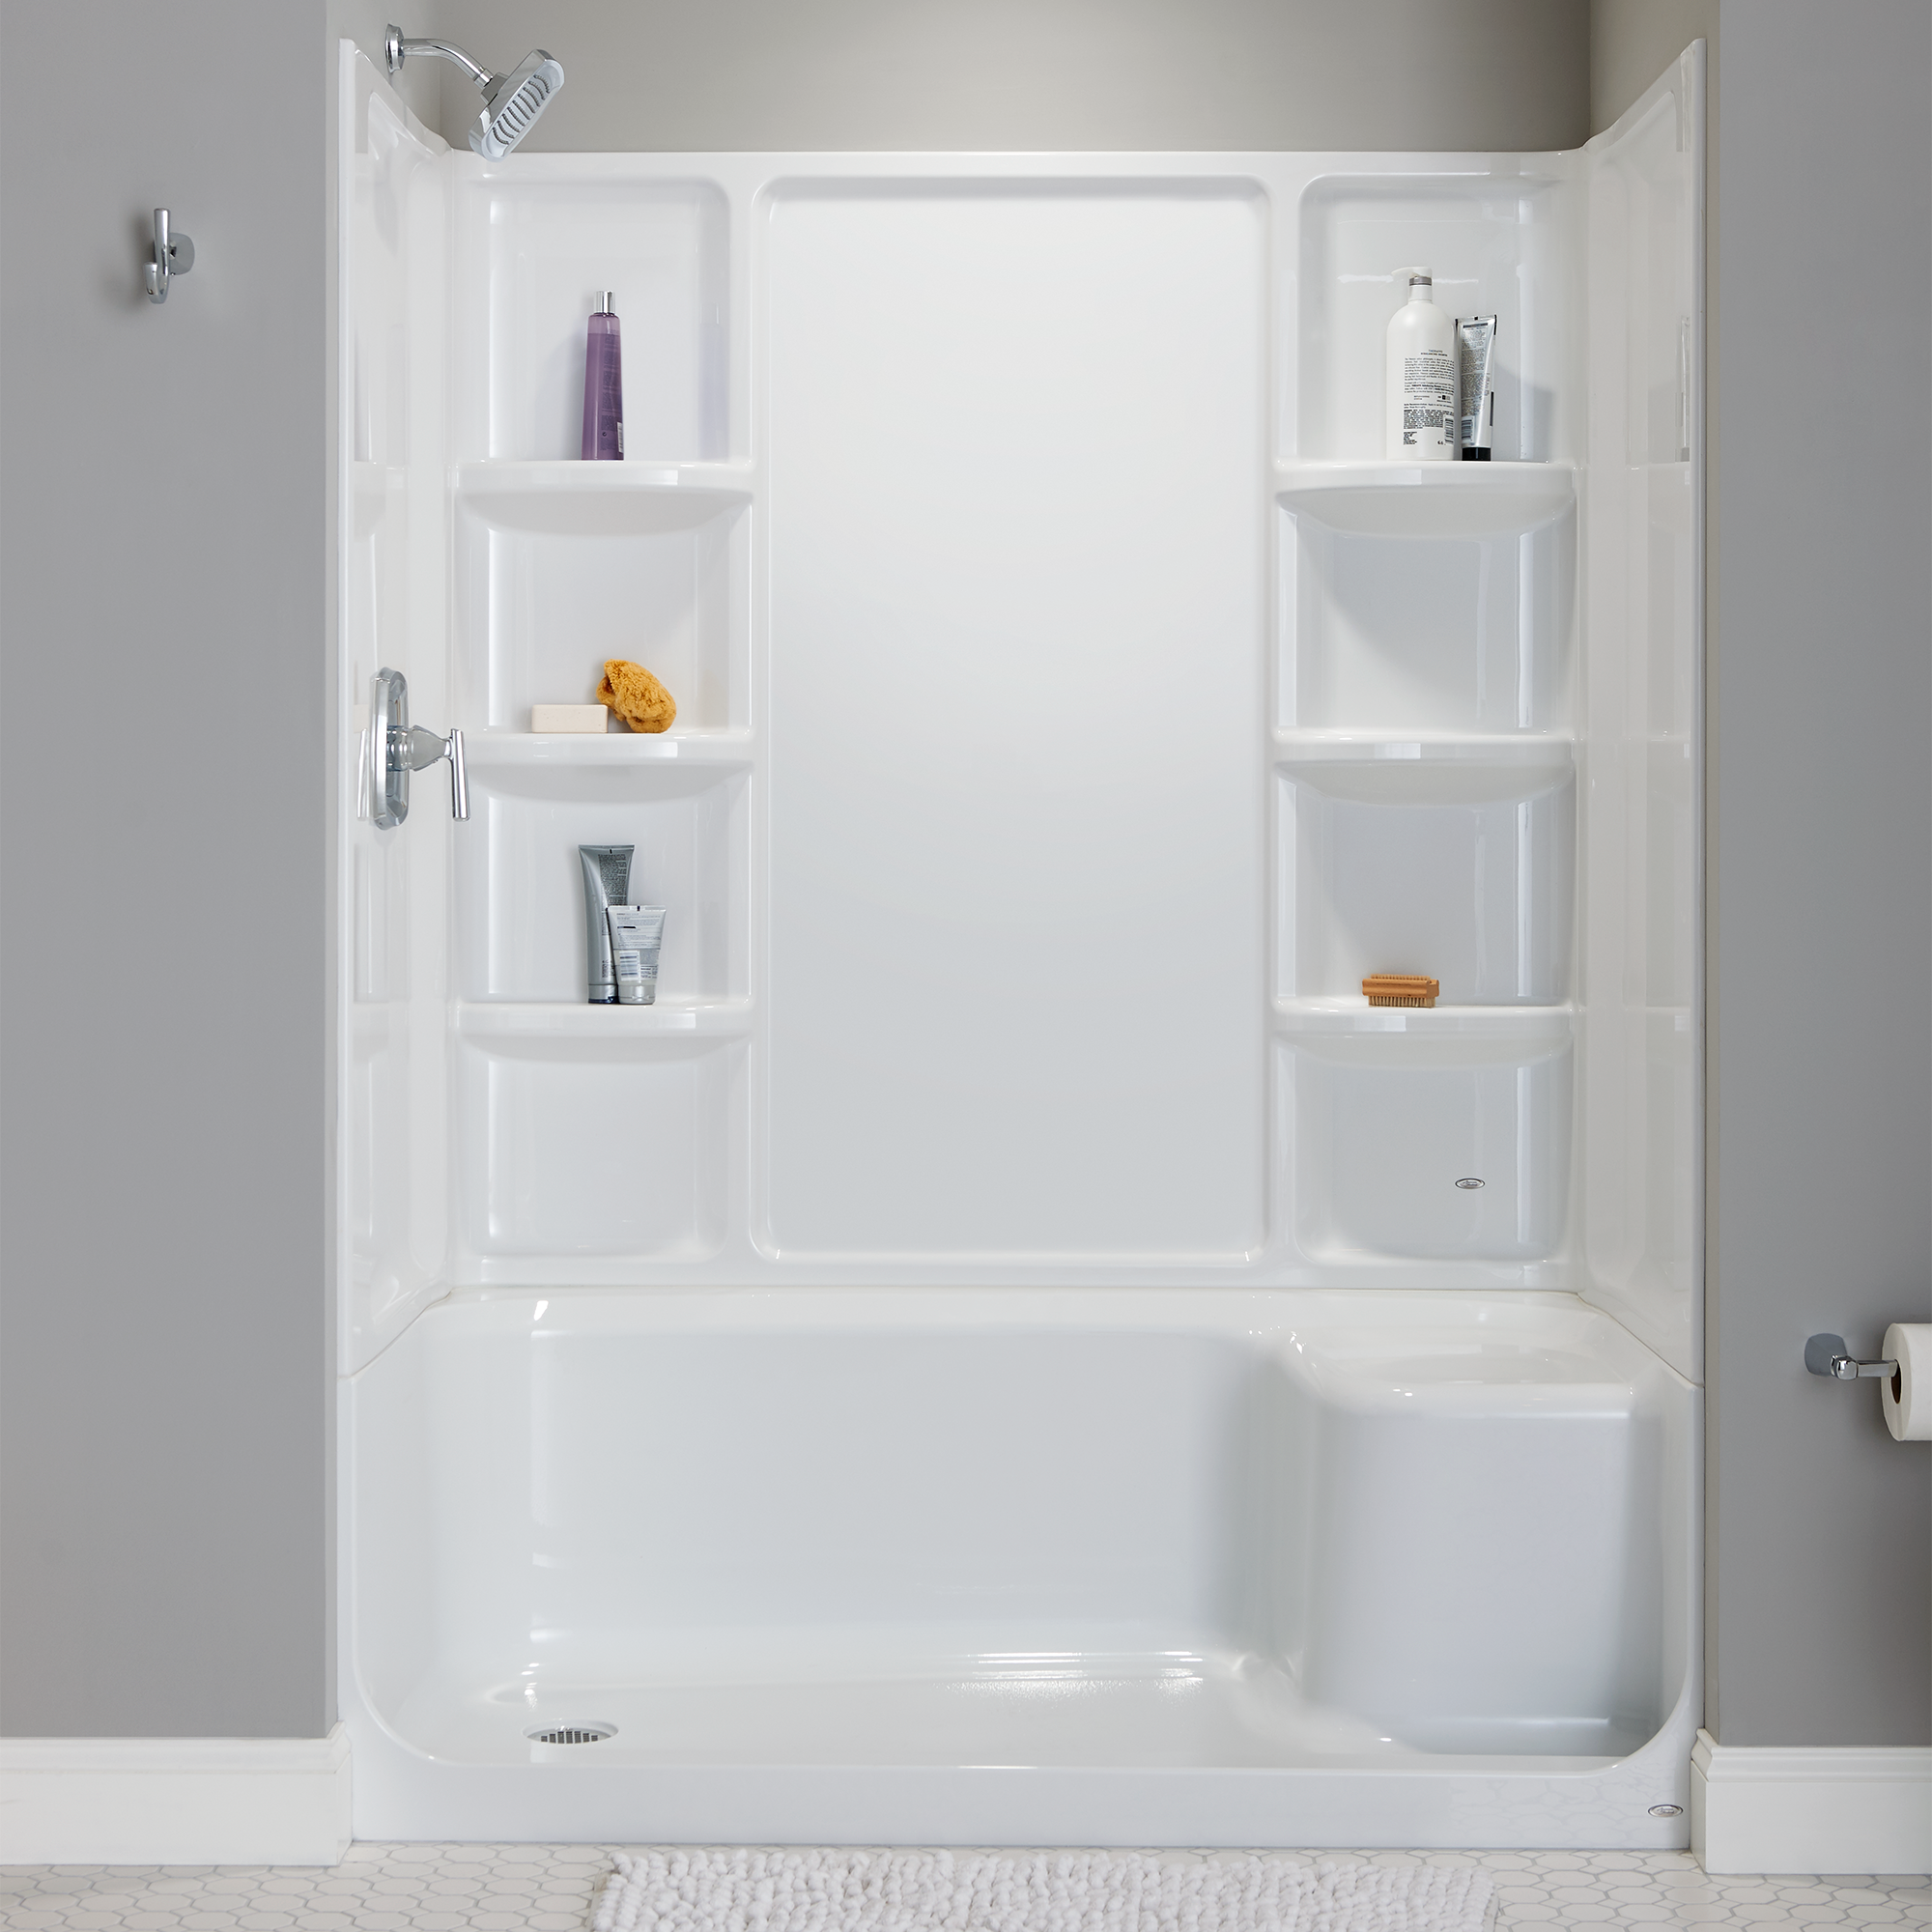 Lowes Showers With Seats.Elevate Shower Base With Built In Seat Lowes American